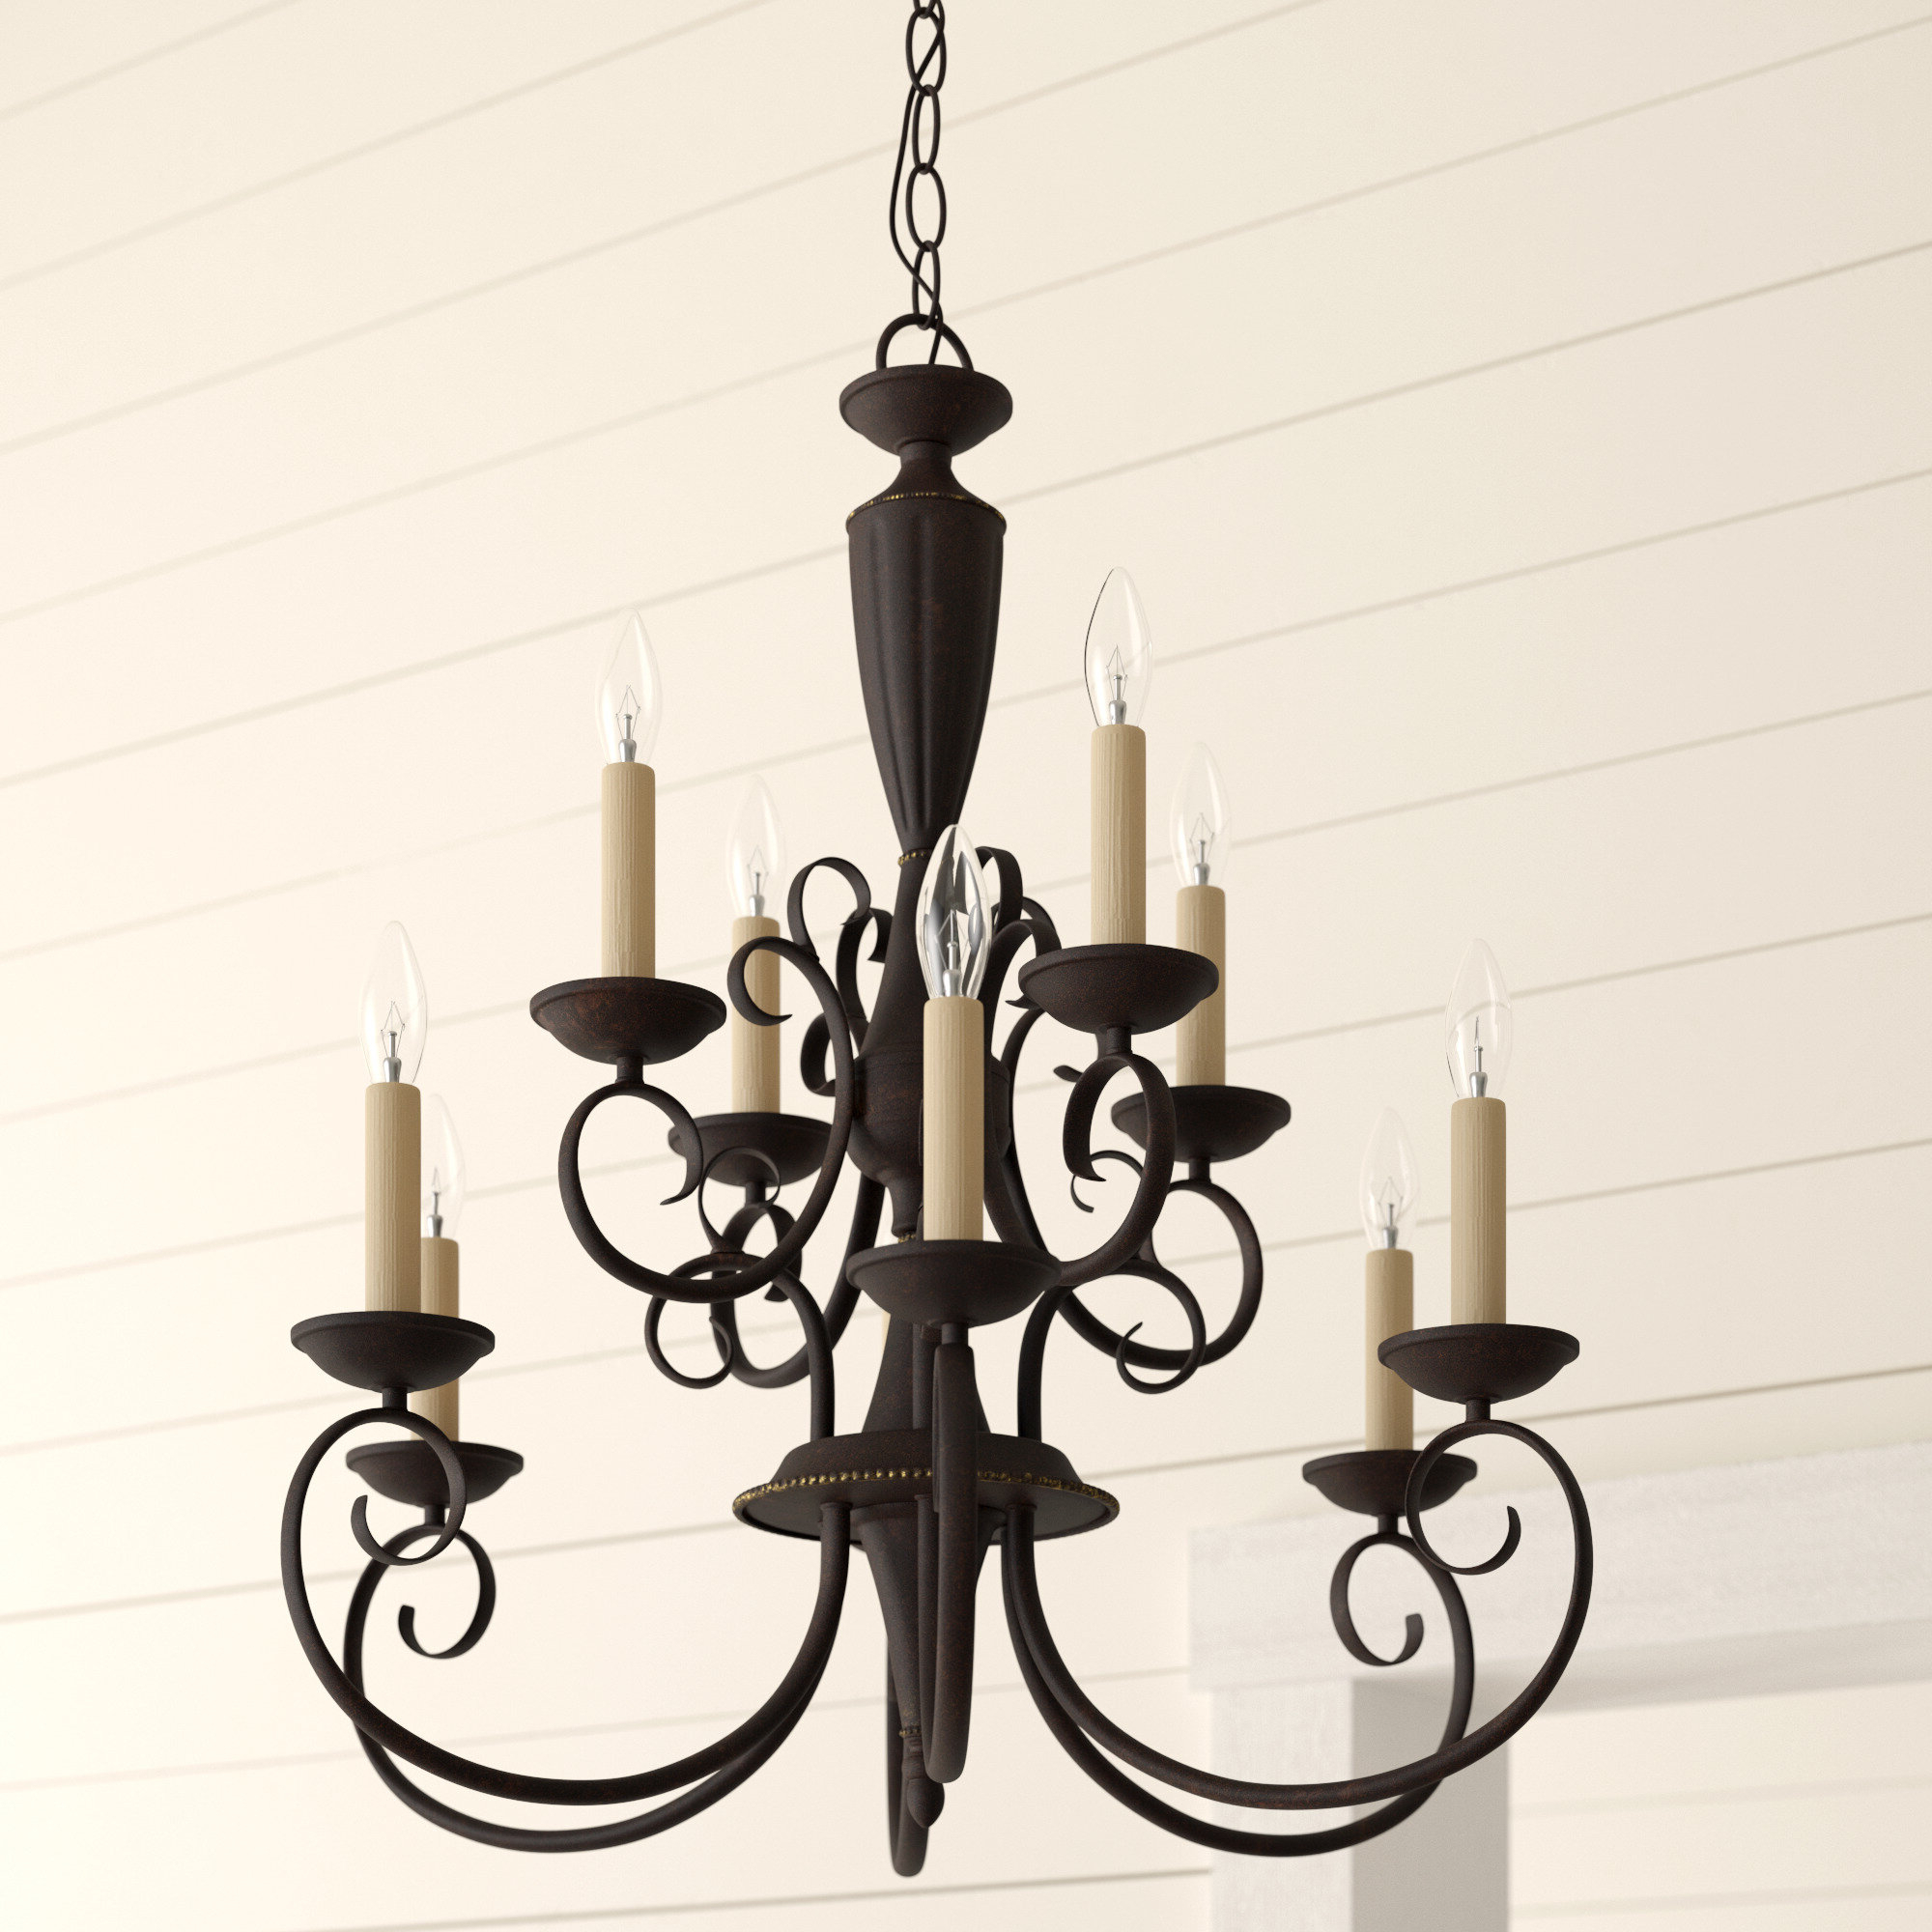 Newent 3 Light Single Bowl Pendants Pertaining To Recent Farmhouse & Rustic Charlton Home Chandeliers (View 18 of 25)